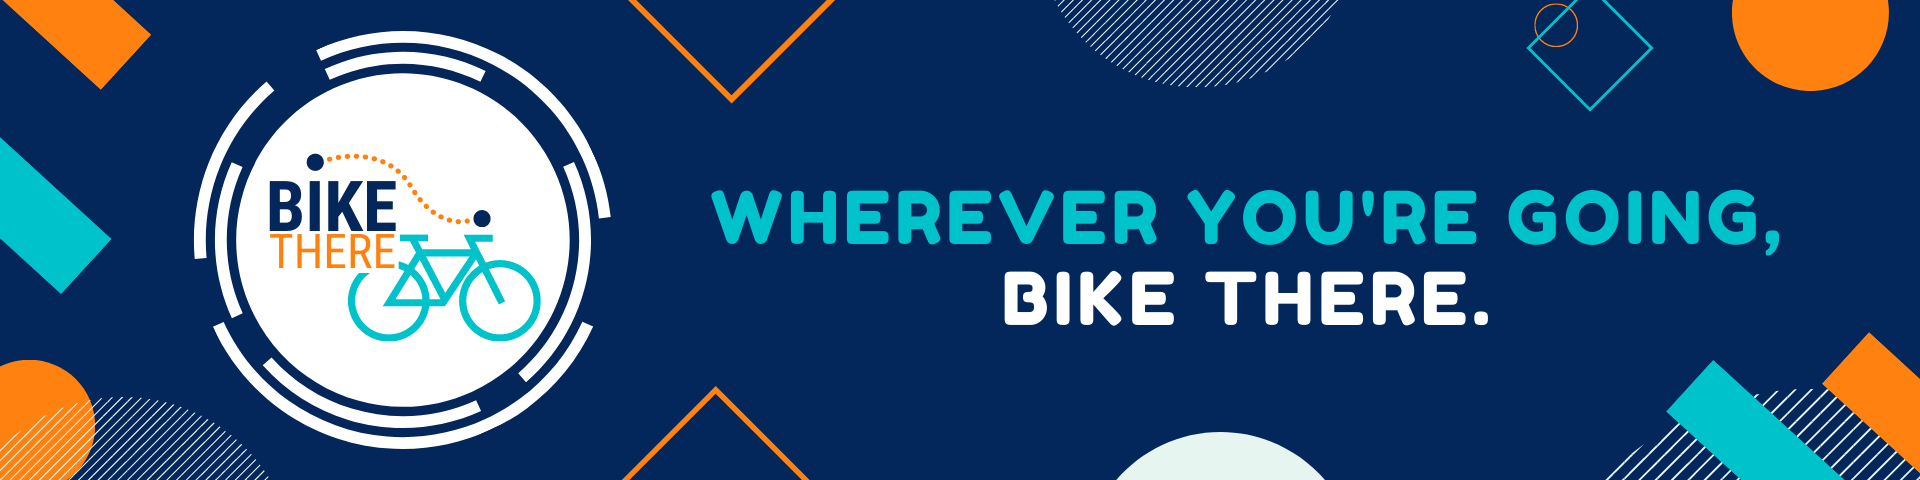 banner graphic - Wherever you're going, #BikeThere